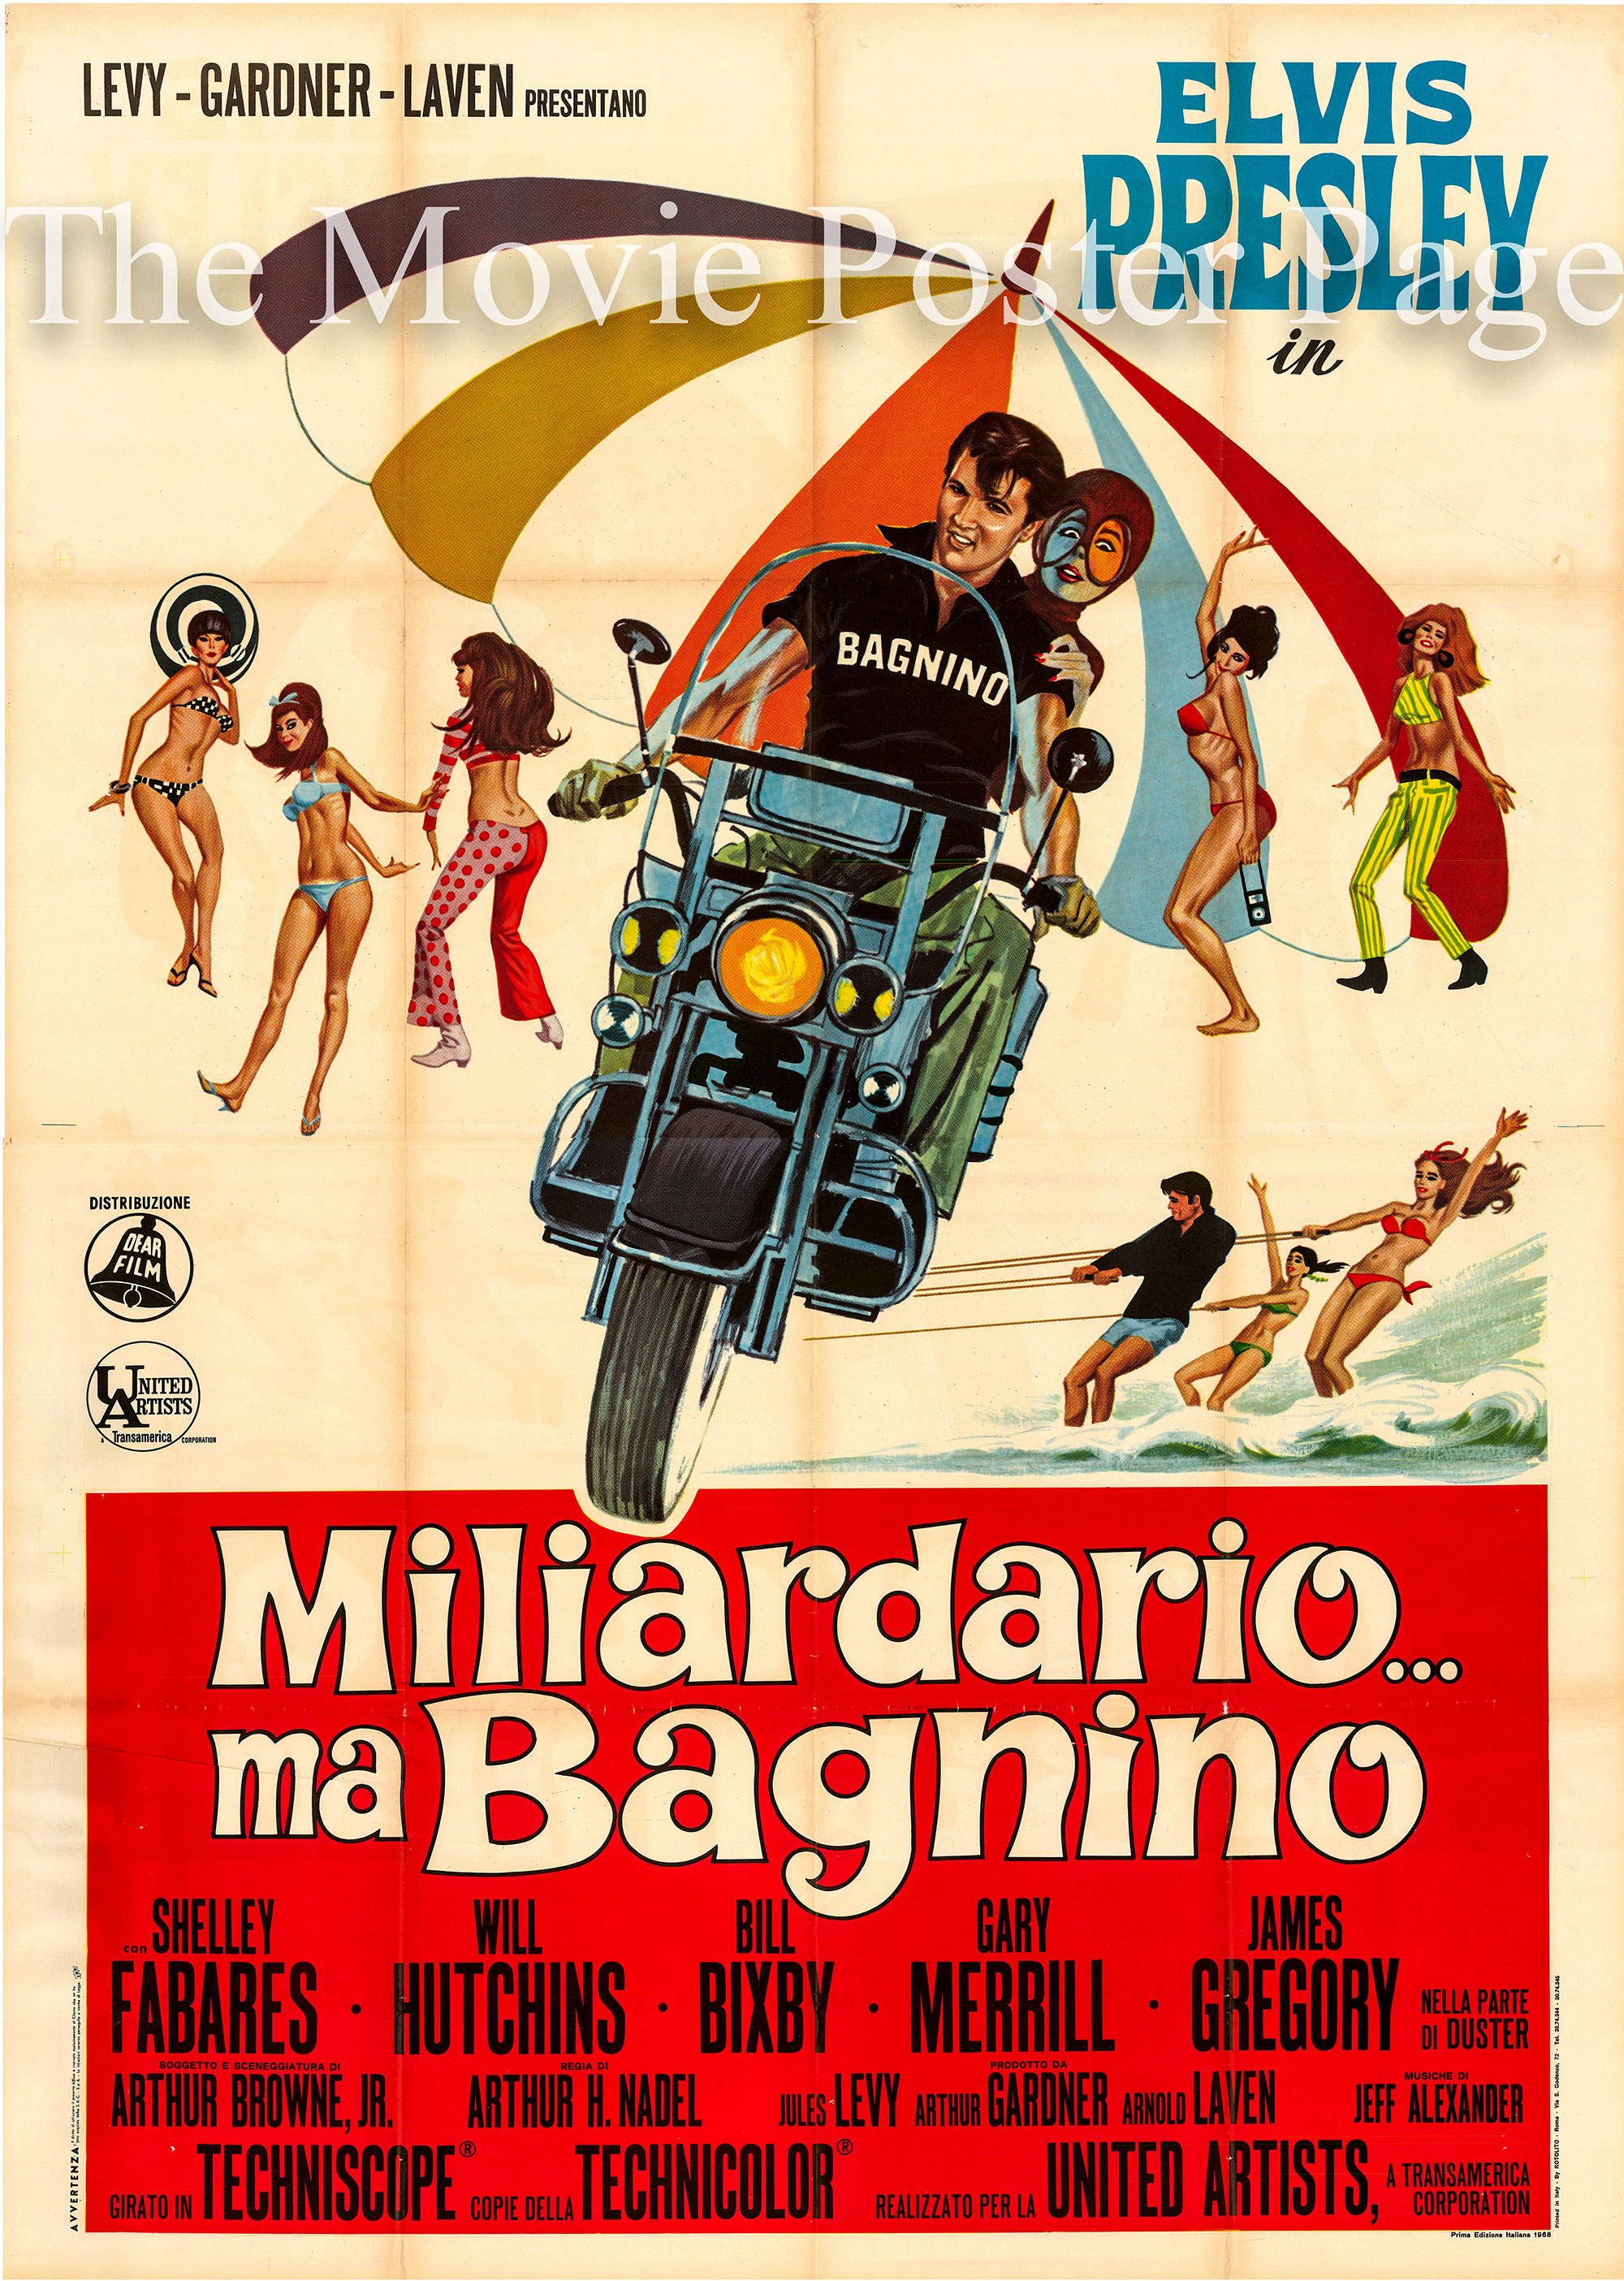 Pictured is an Italian four-sheet promotional poster for the 1967 Arthur H. Nadel film Clambake starring Elvis Presley.